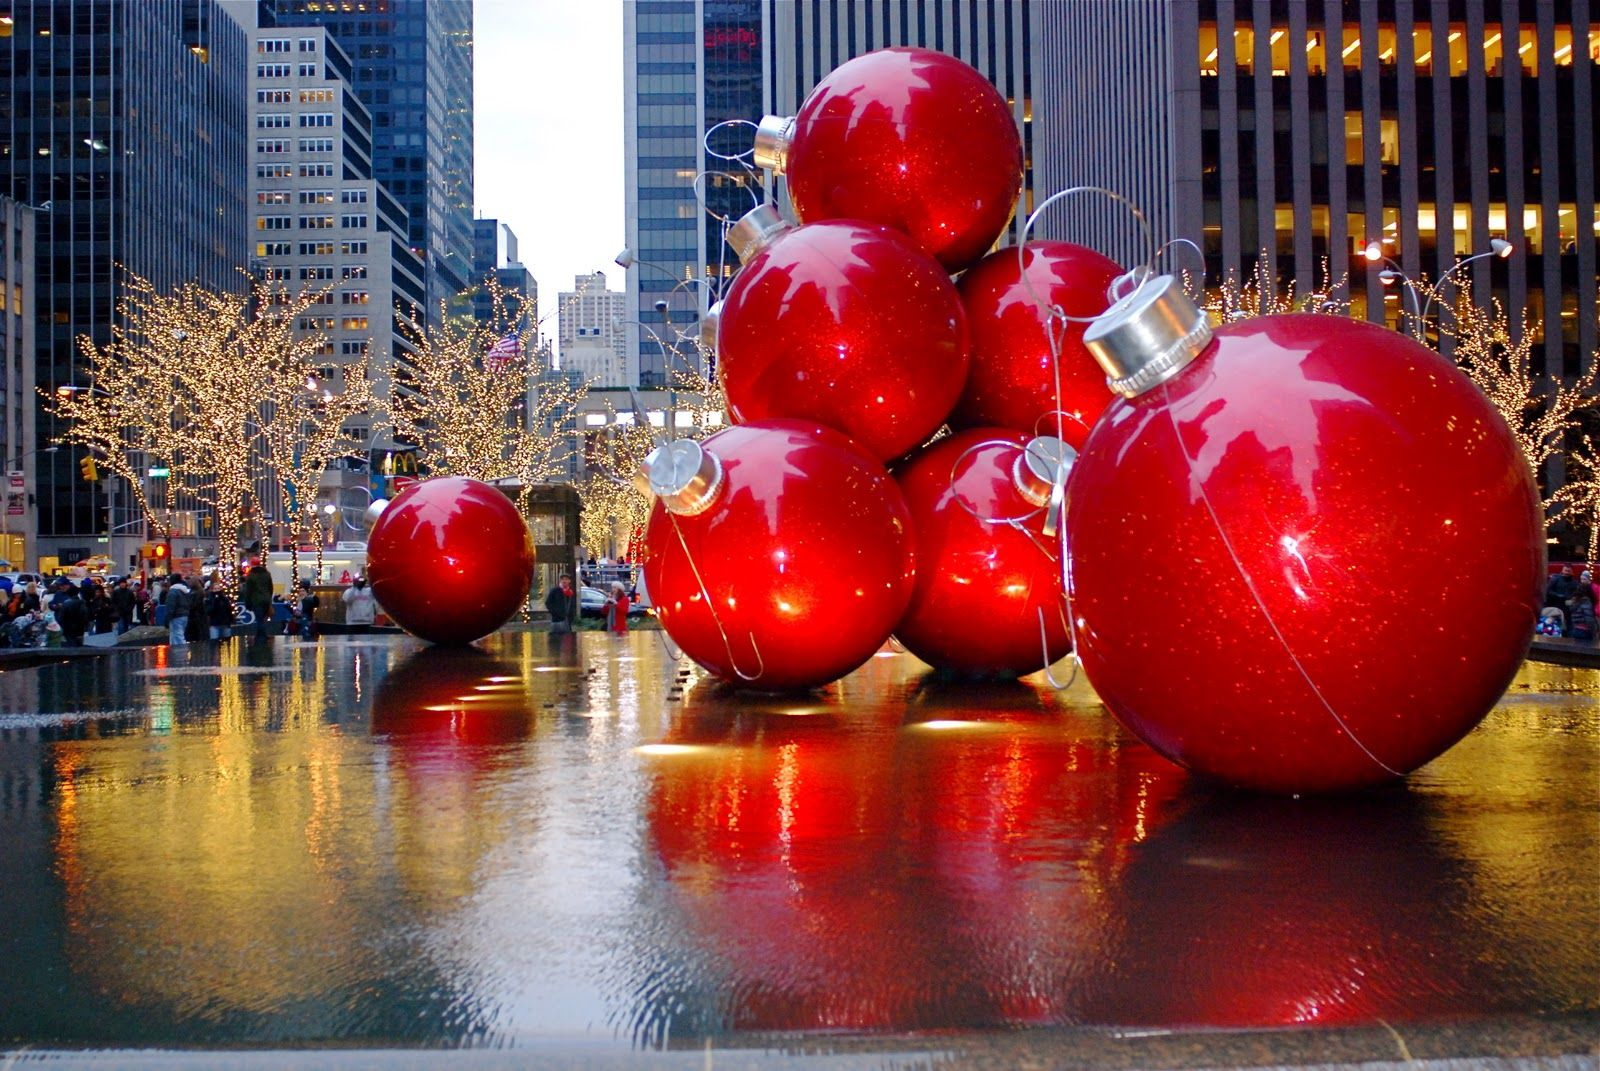 Christmas Holiday Decorations on Sixth Avenue Nyc